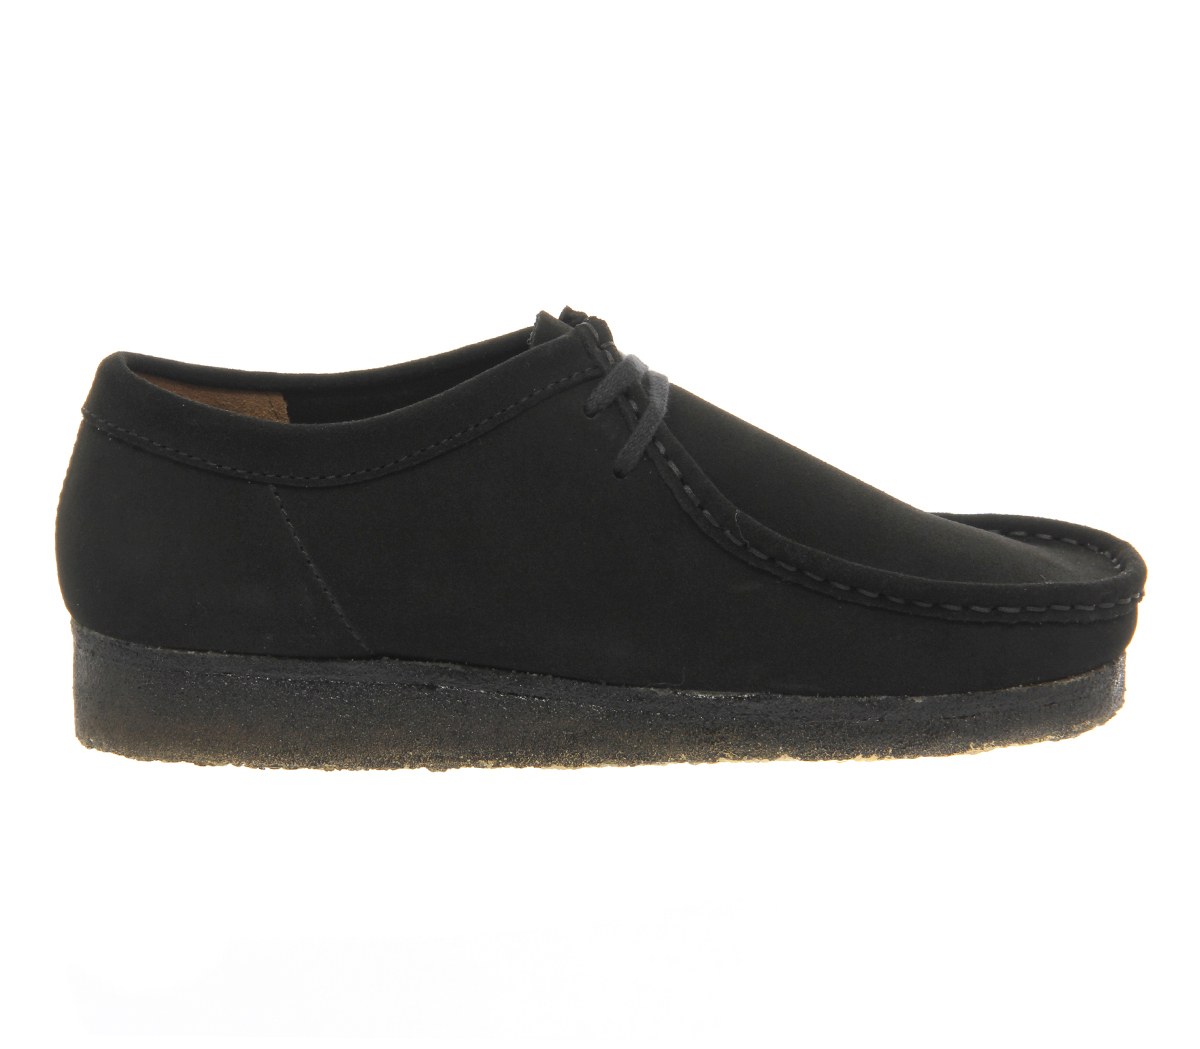 Wallabees Shoes Mens | Clarks Wallabees Men | Clarks Boots Mens